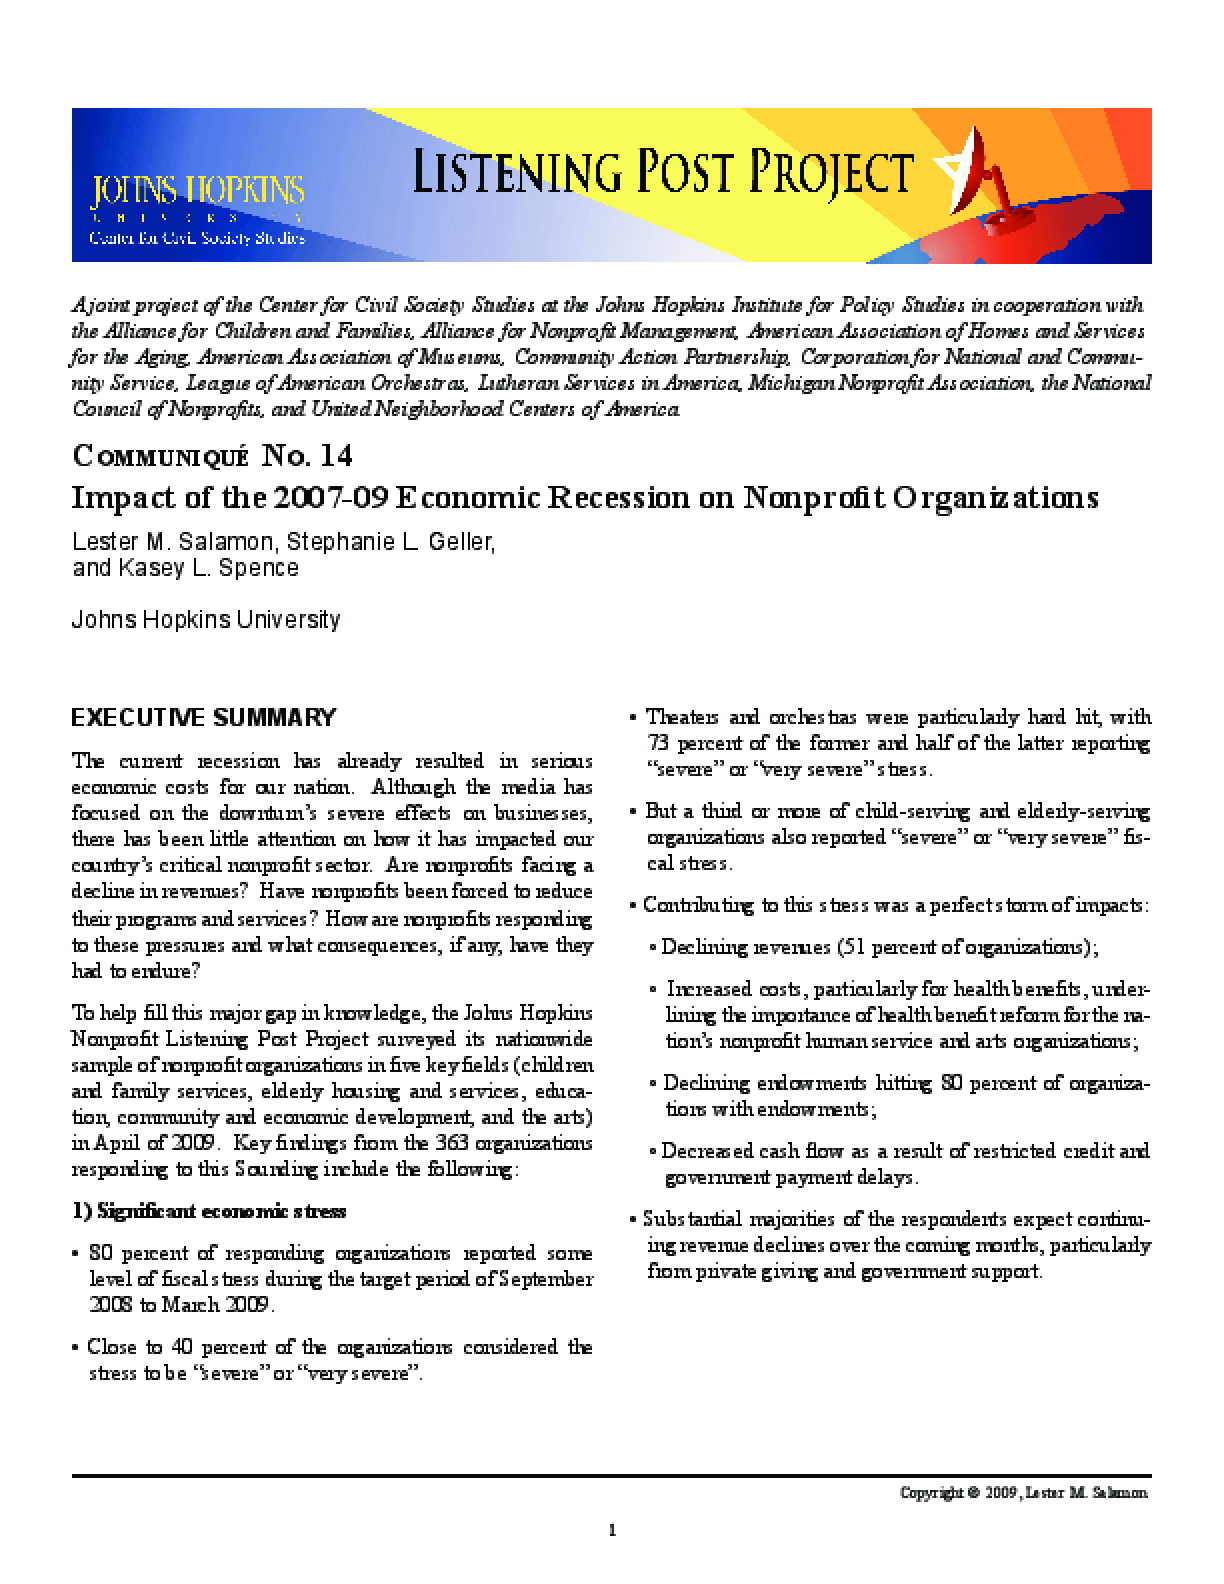 Communiqué No. 14: Impact of the 2007-09 Economic Recession on Nonprofit Organizations